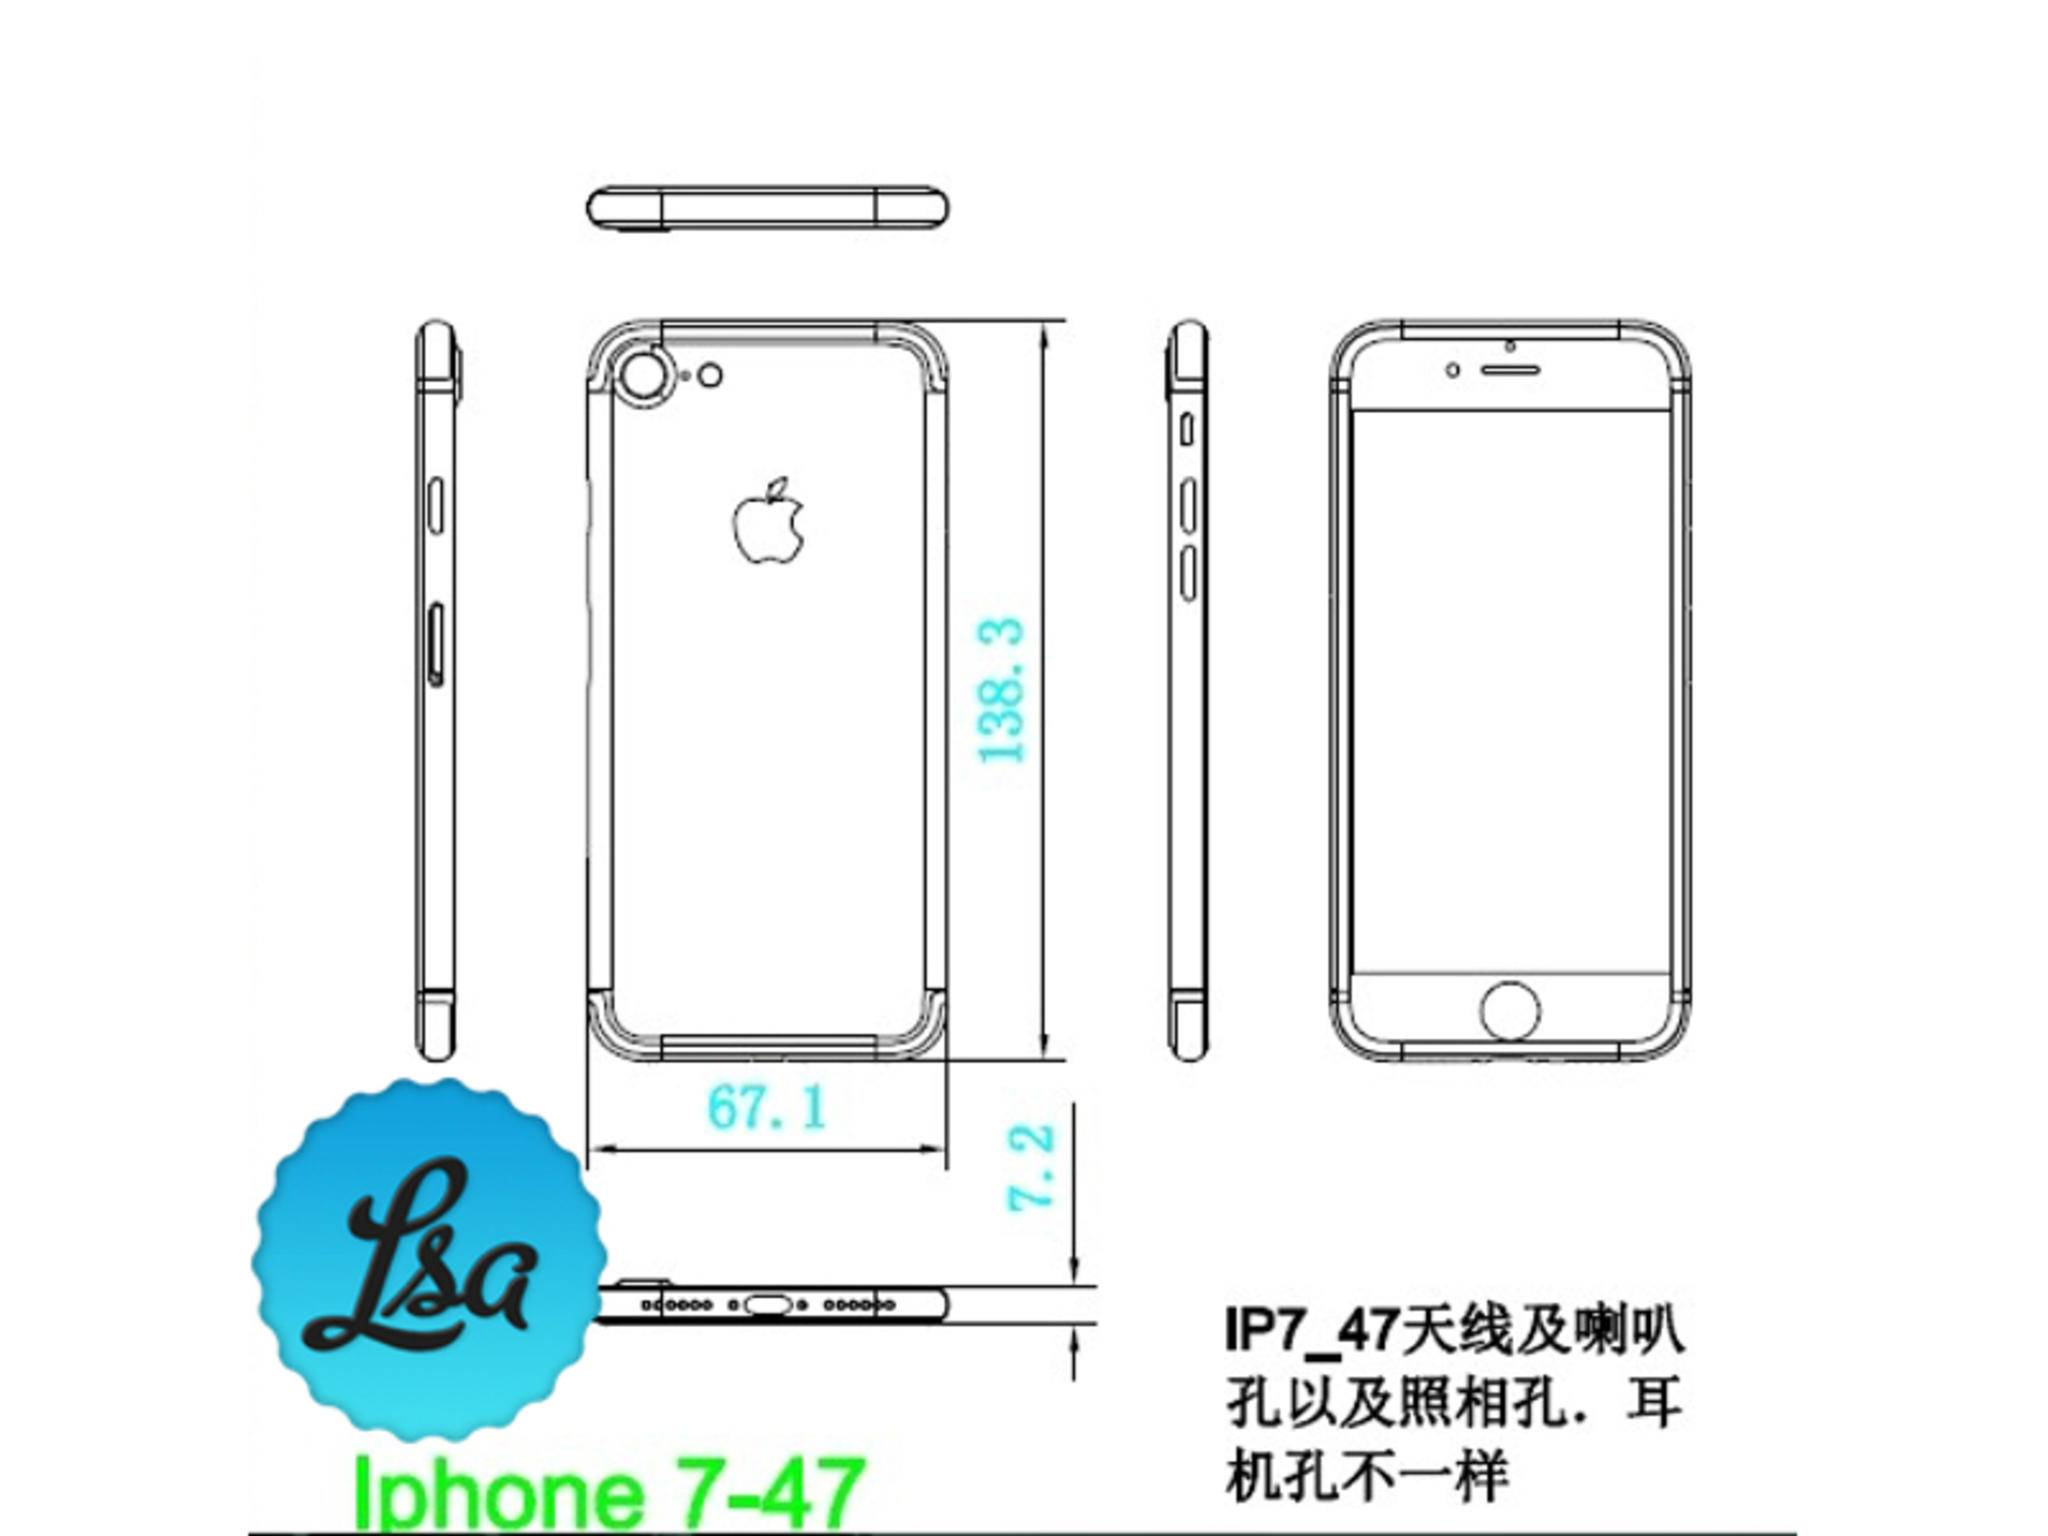 Angeblicher Bauplan des iPhone 7.